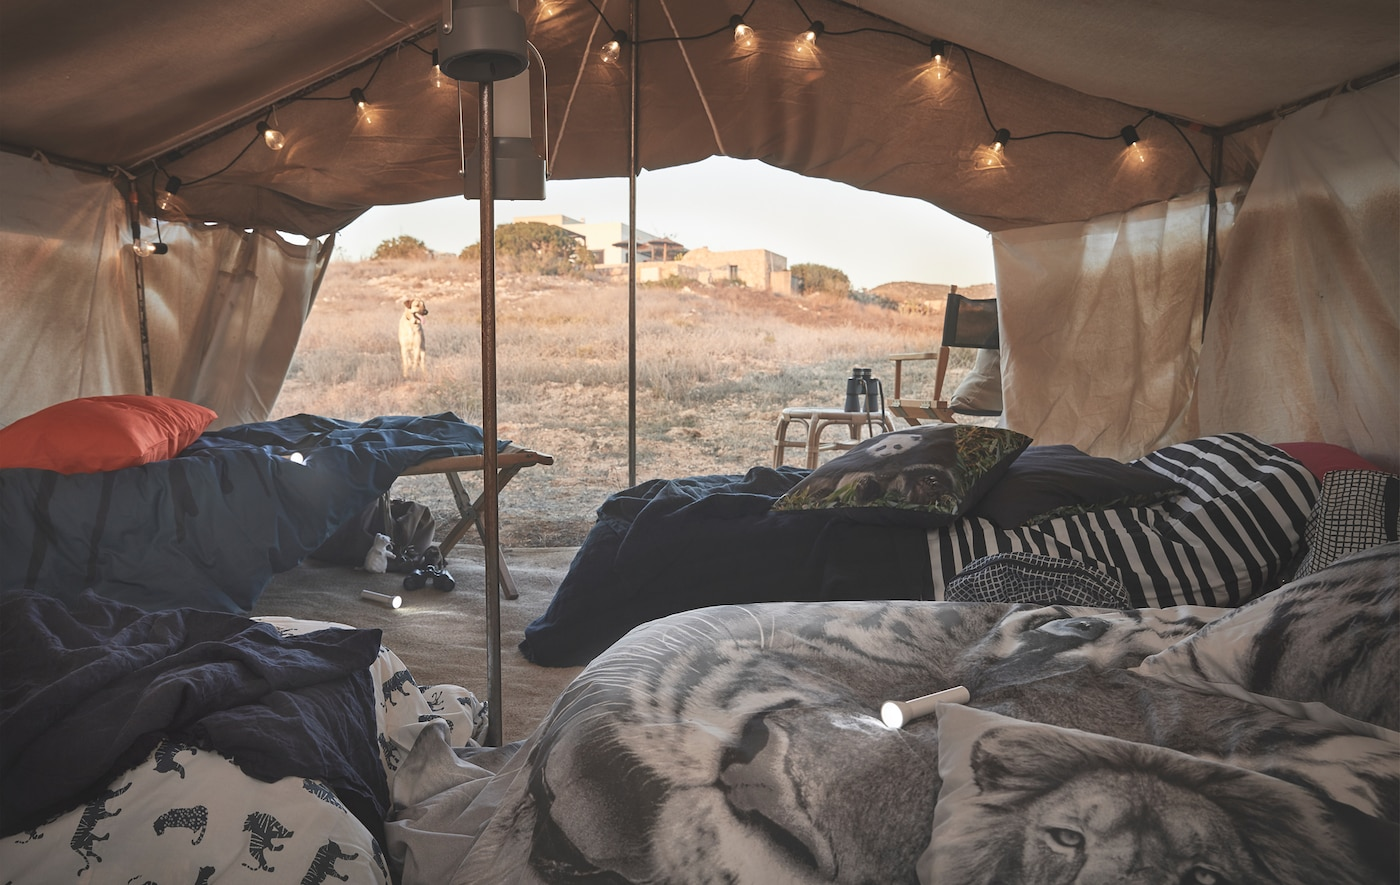 Animal-print bedding on beds under a canvas in the desert.